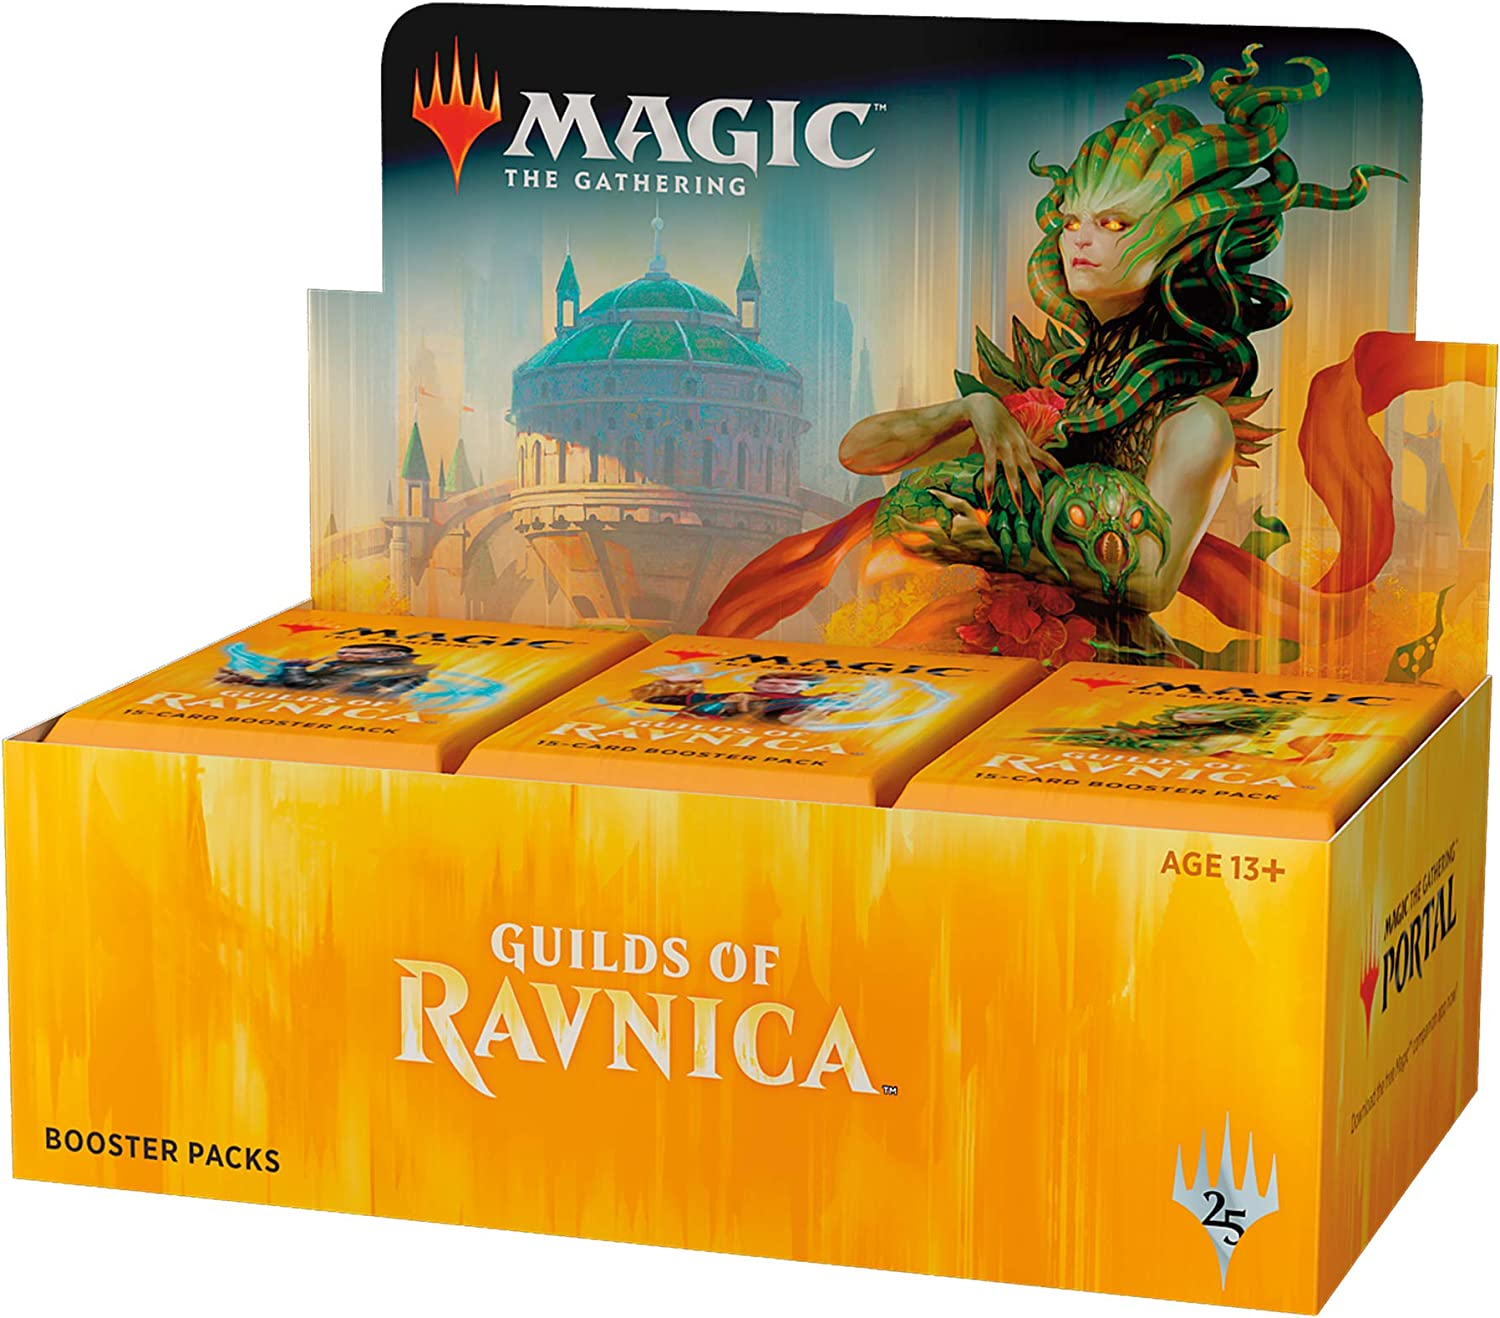 Magic  The Gathering Guilds of Ravnica Booster Box   36 Booster Packs (540 Cards)